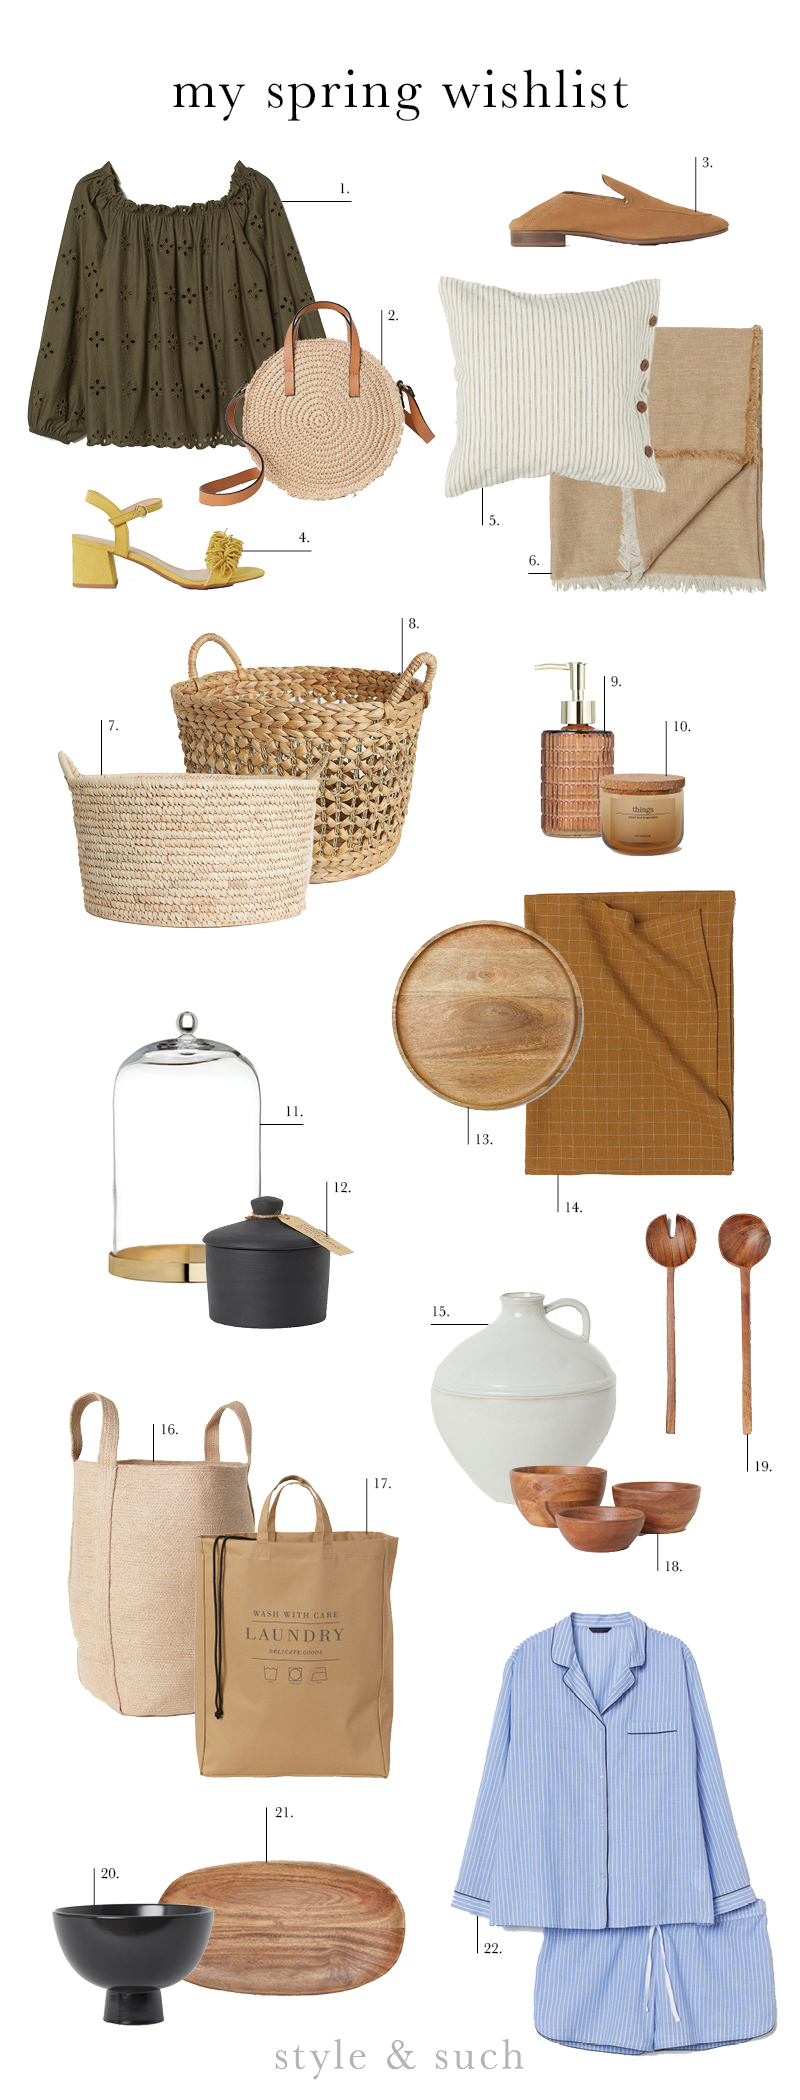 "1.  Off the Shoulder Top  | 2.  Round Paper Straw Bag  | 3.  Suede Loafers  | 4.  Sandals with Fringe  | 5.  Washed Linen Cushion Cover  | 6.  Linen Blend Blanket  | 7.  Storage Basket  | 8.  Braided Storage Basket  | 9.  Glass Soap Dispenser  | 10.  Small Glass ""Things"" Jar  